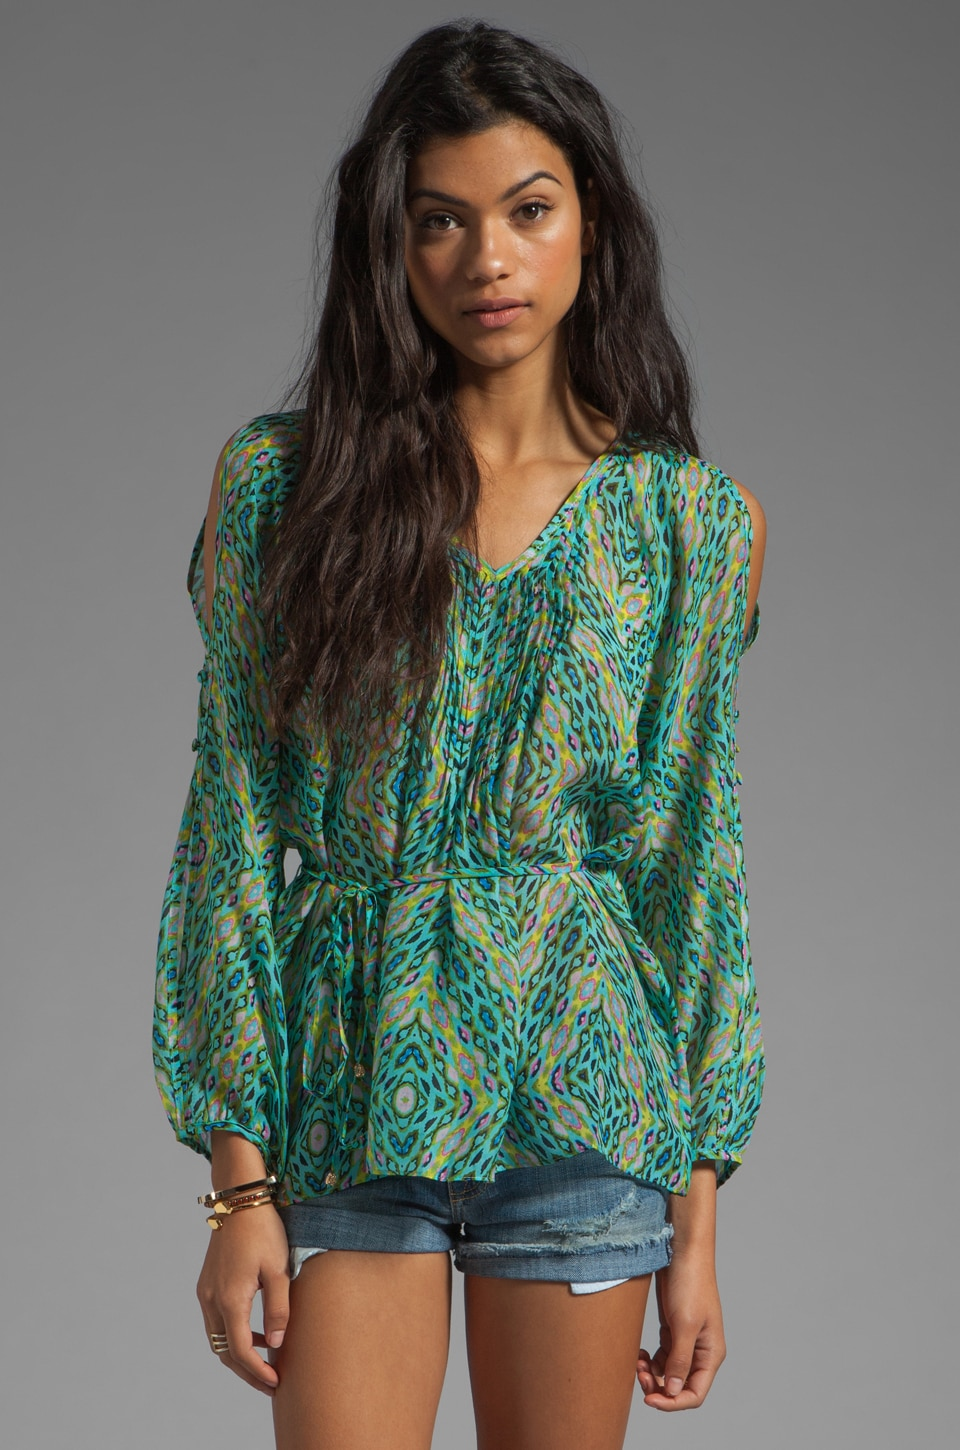 heartLoom Dalia Top in Seafoam